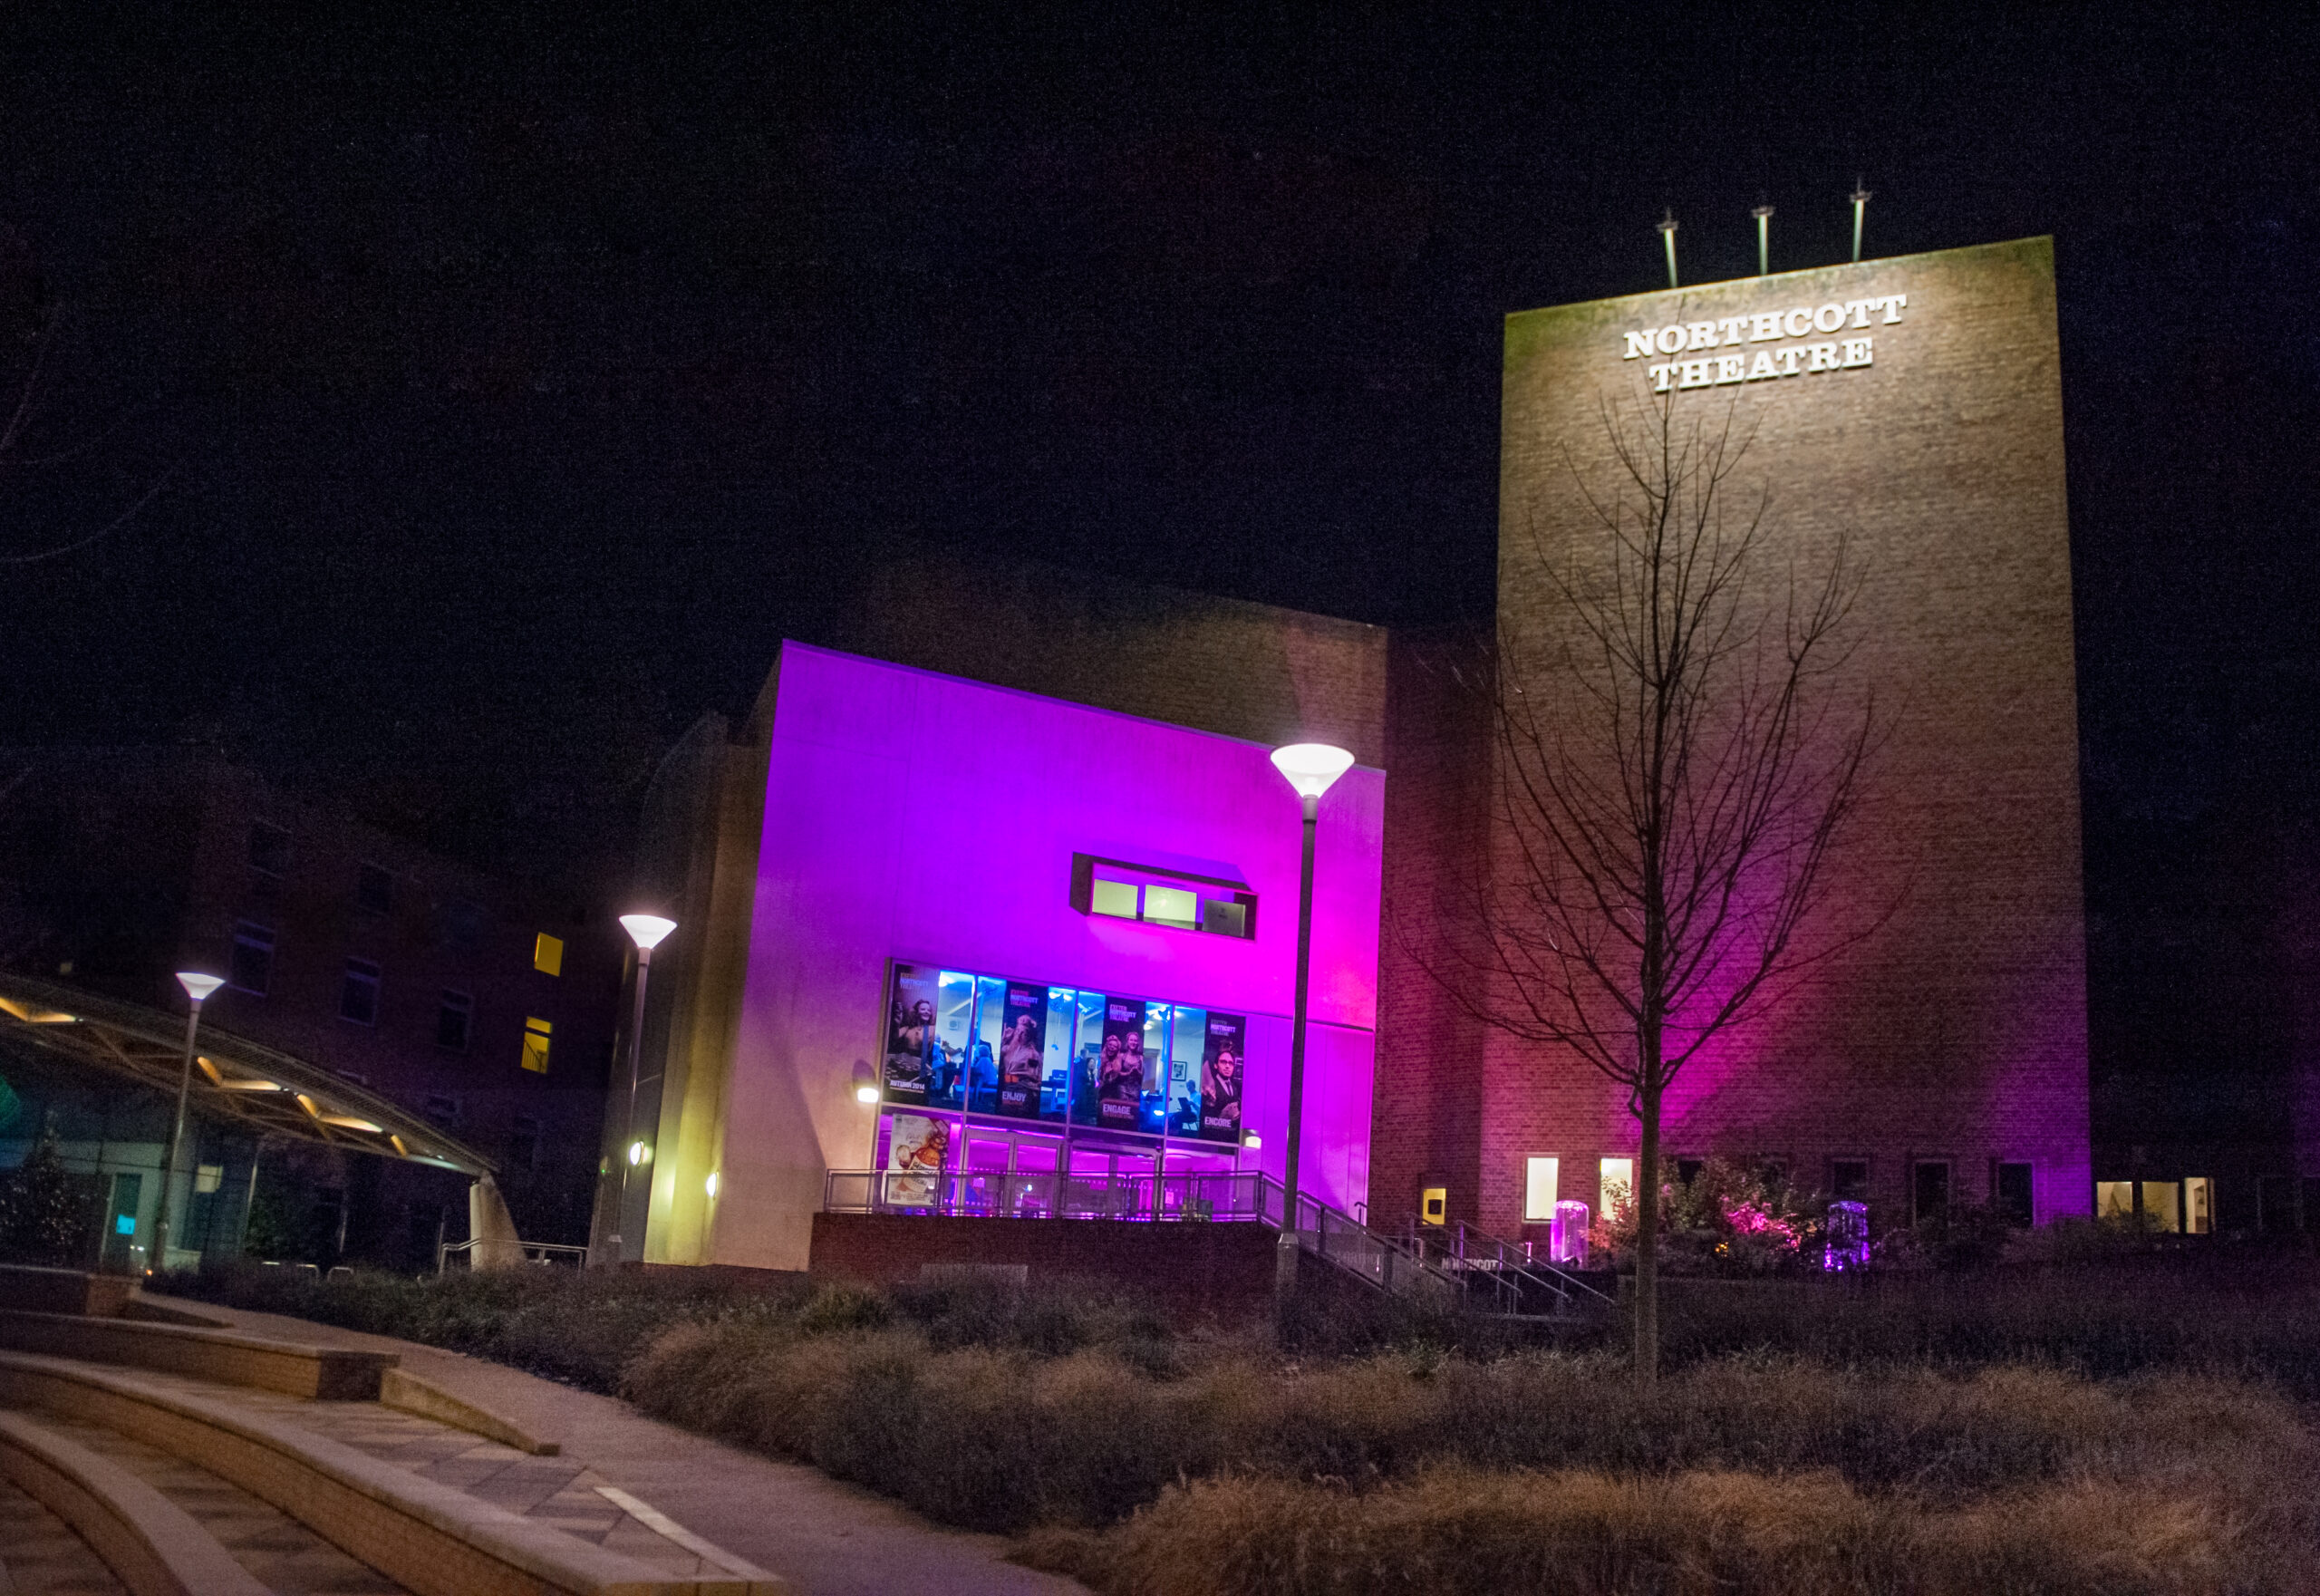 Photo at night of the Northcott Theatre building